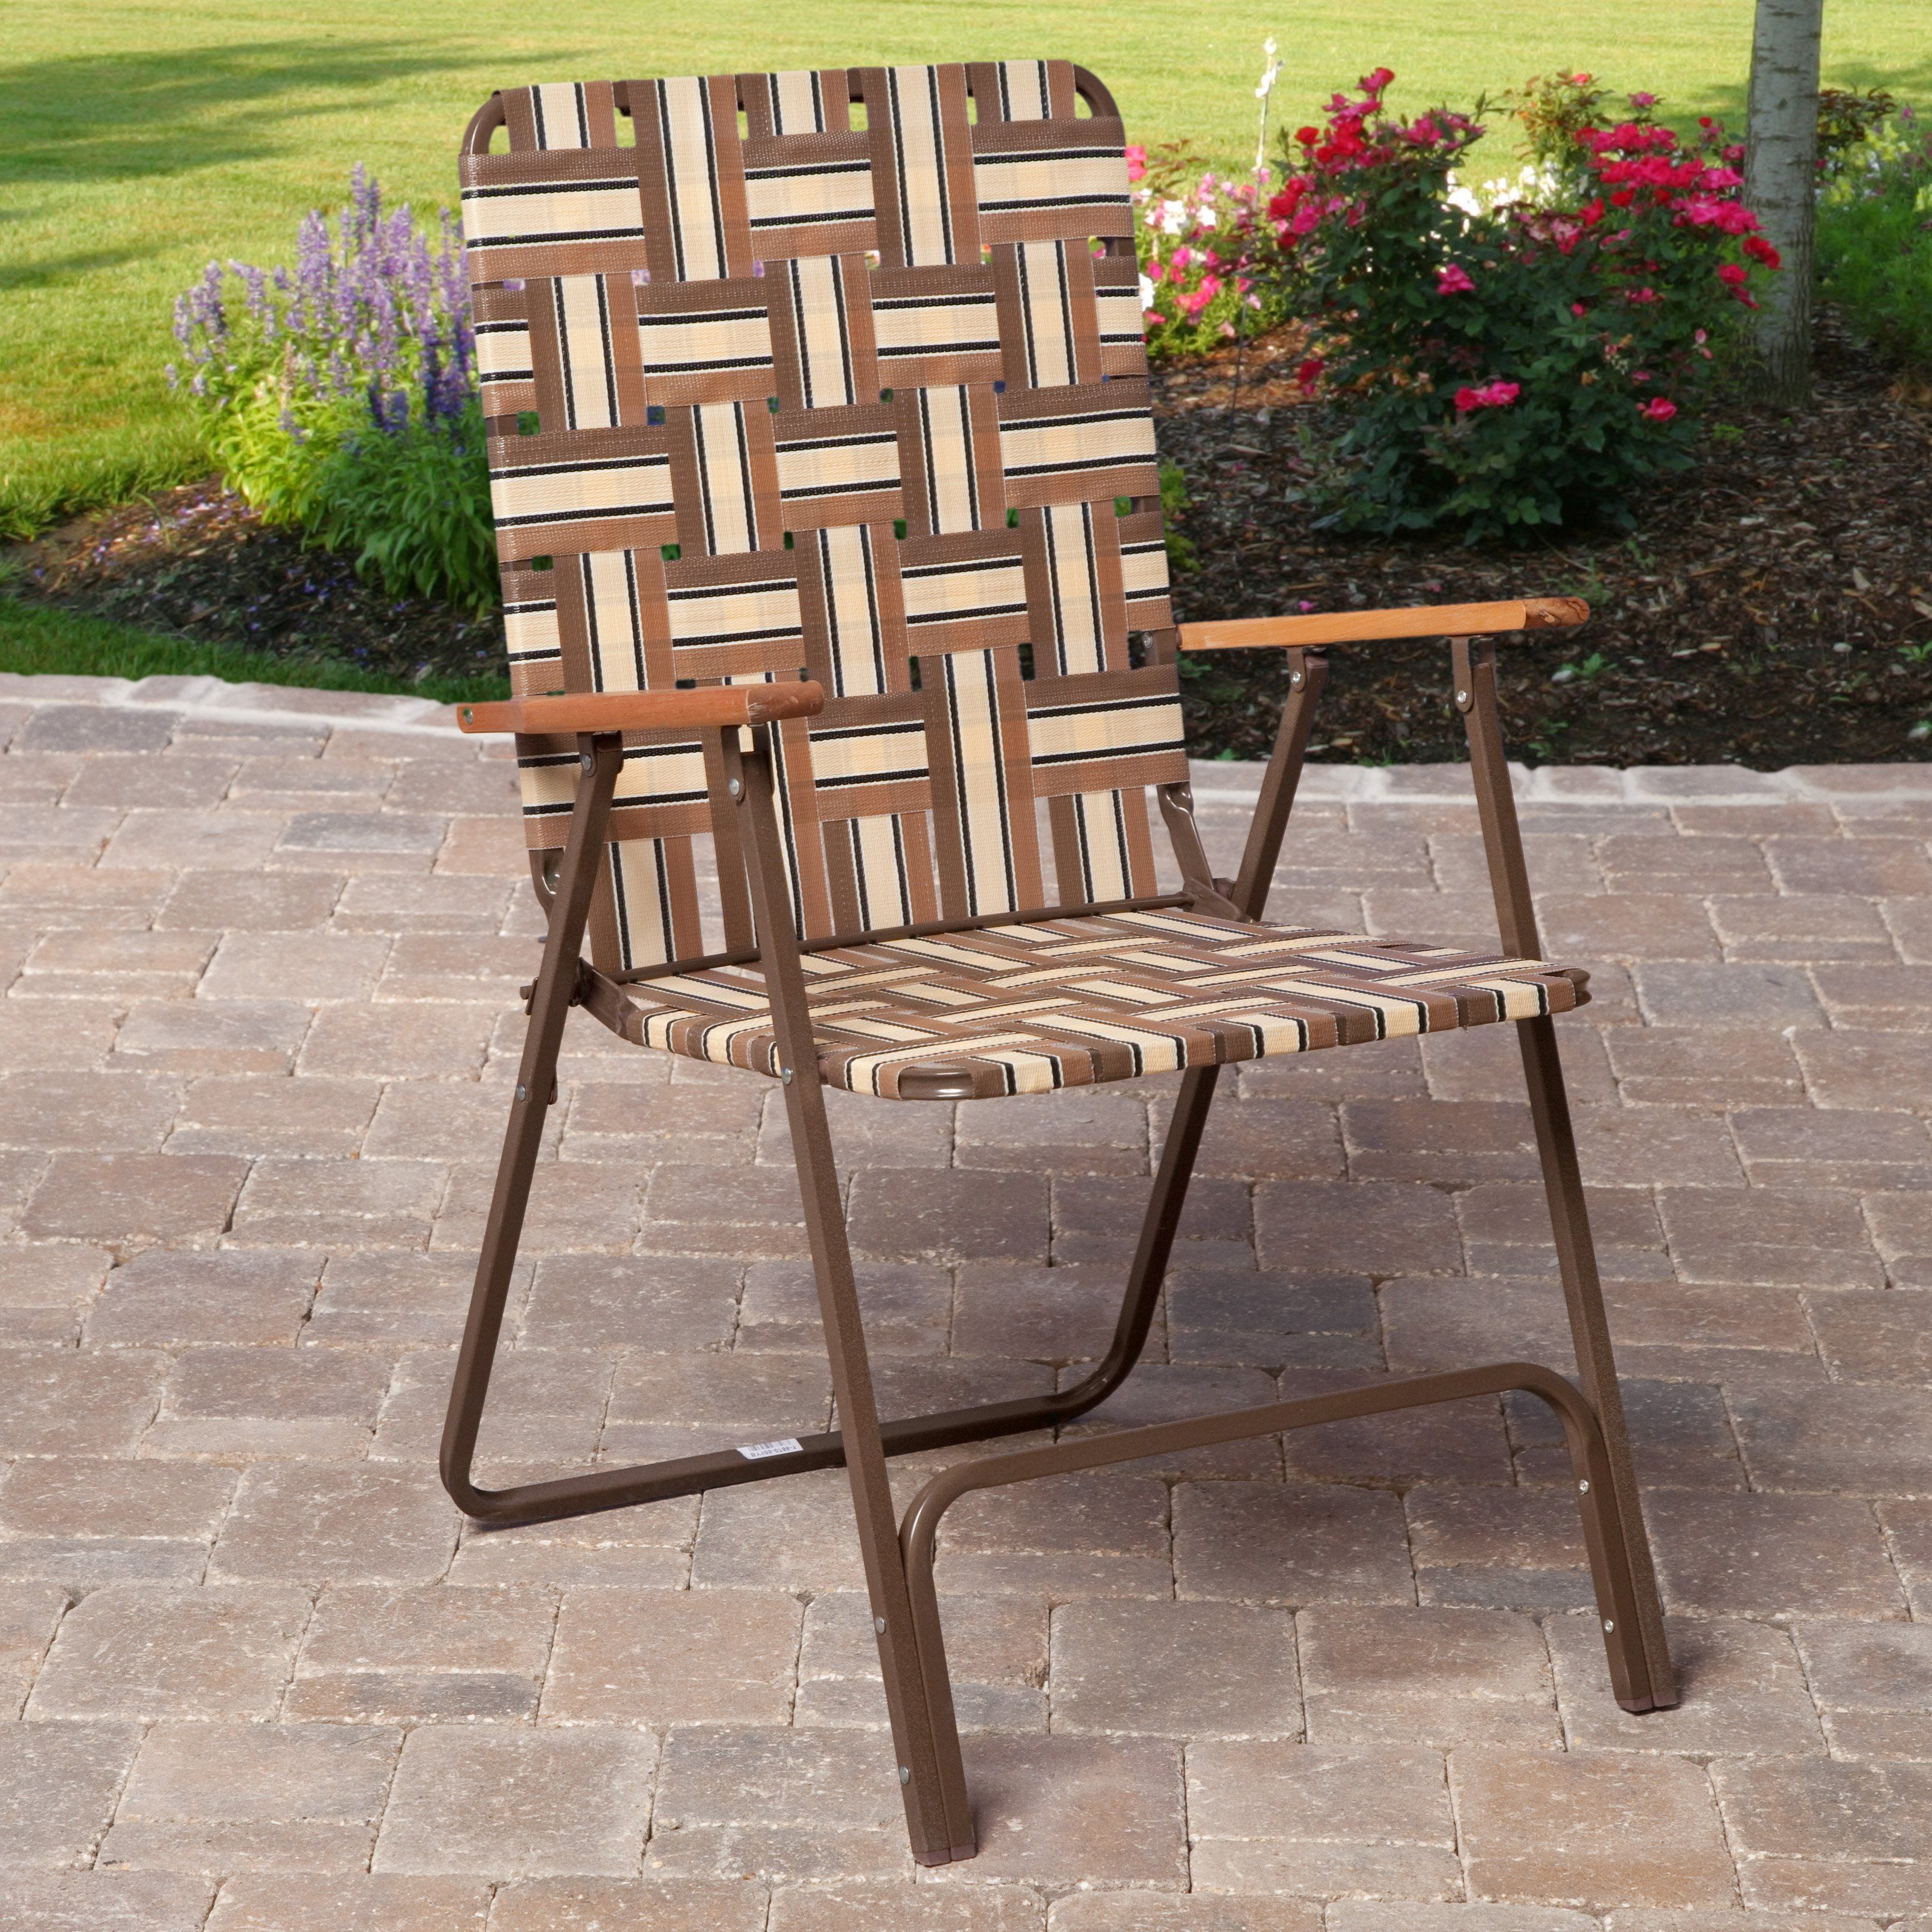 Rio Deluxe Web Lawn Chair Www Hayneedle Com Lawn Chairs